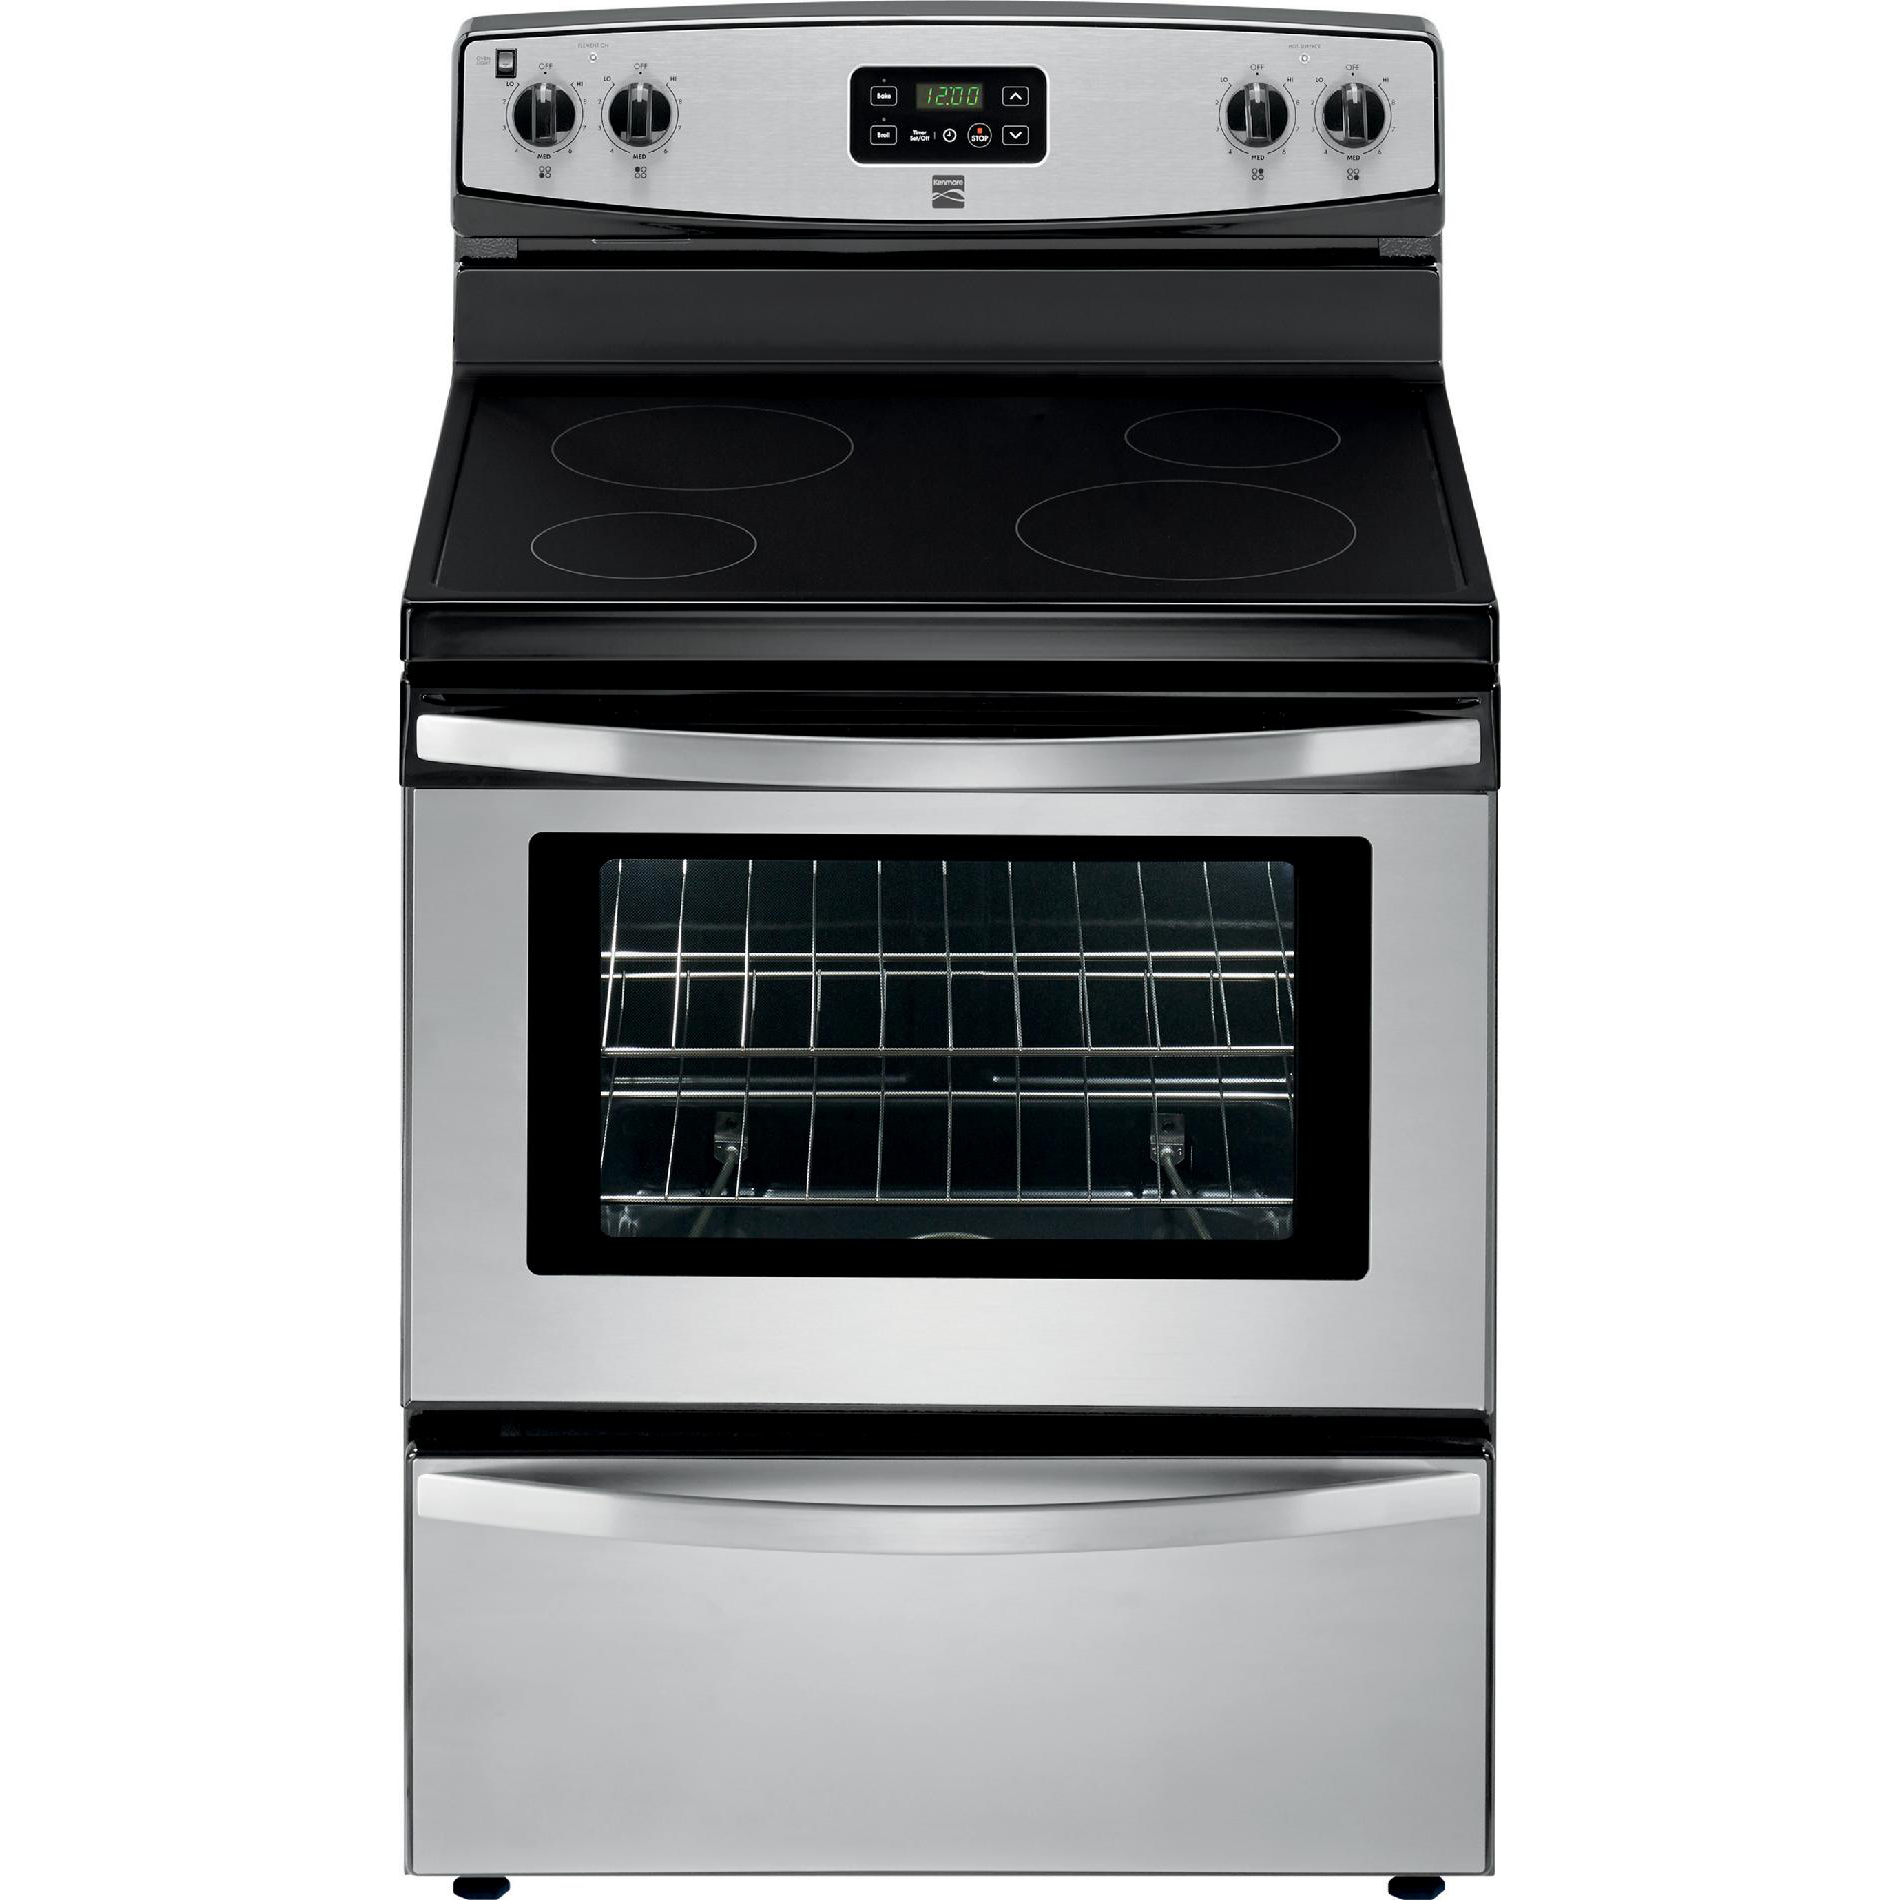 93013-4-9-cu-ft-Electric-Freestanding-Range-Stainless-Steel